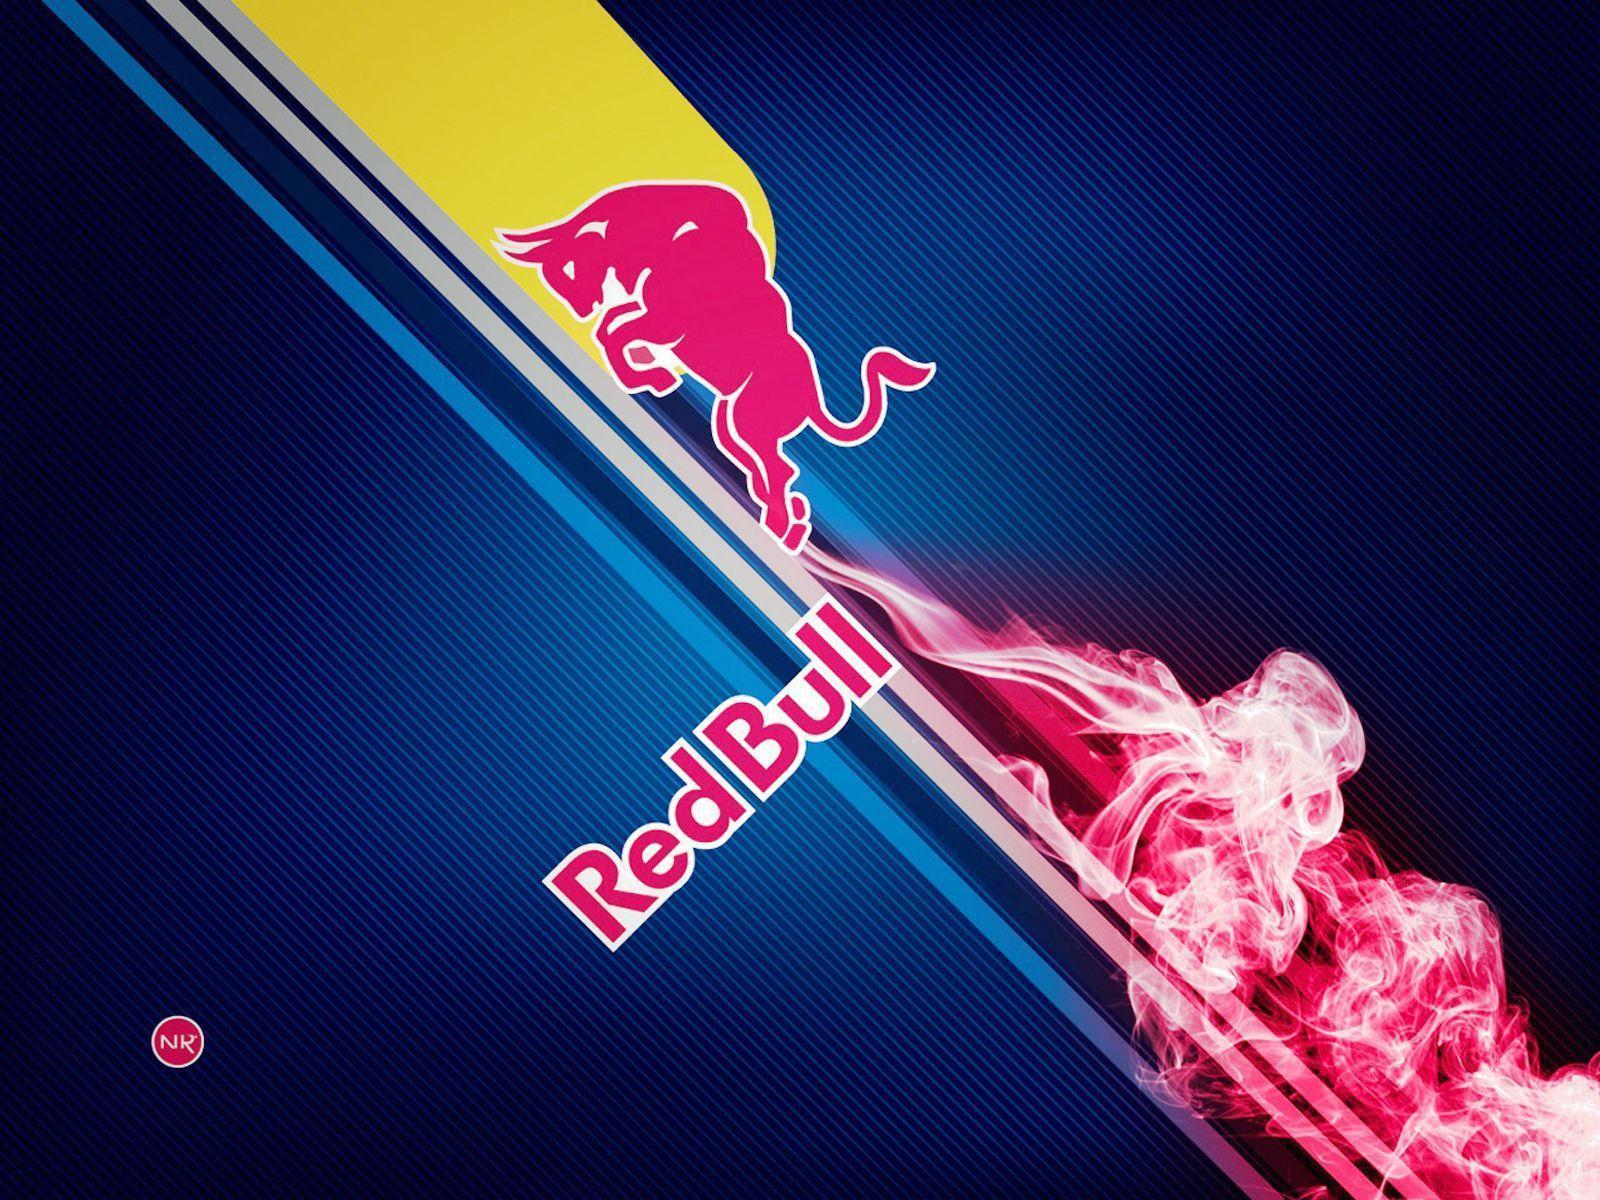 Red Bull HD Wallpapers - Wallpaper Cave